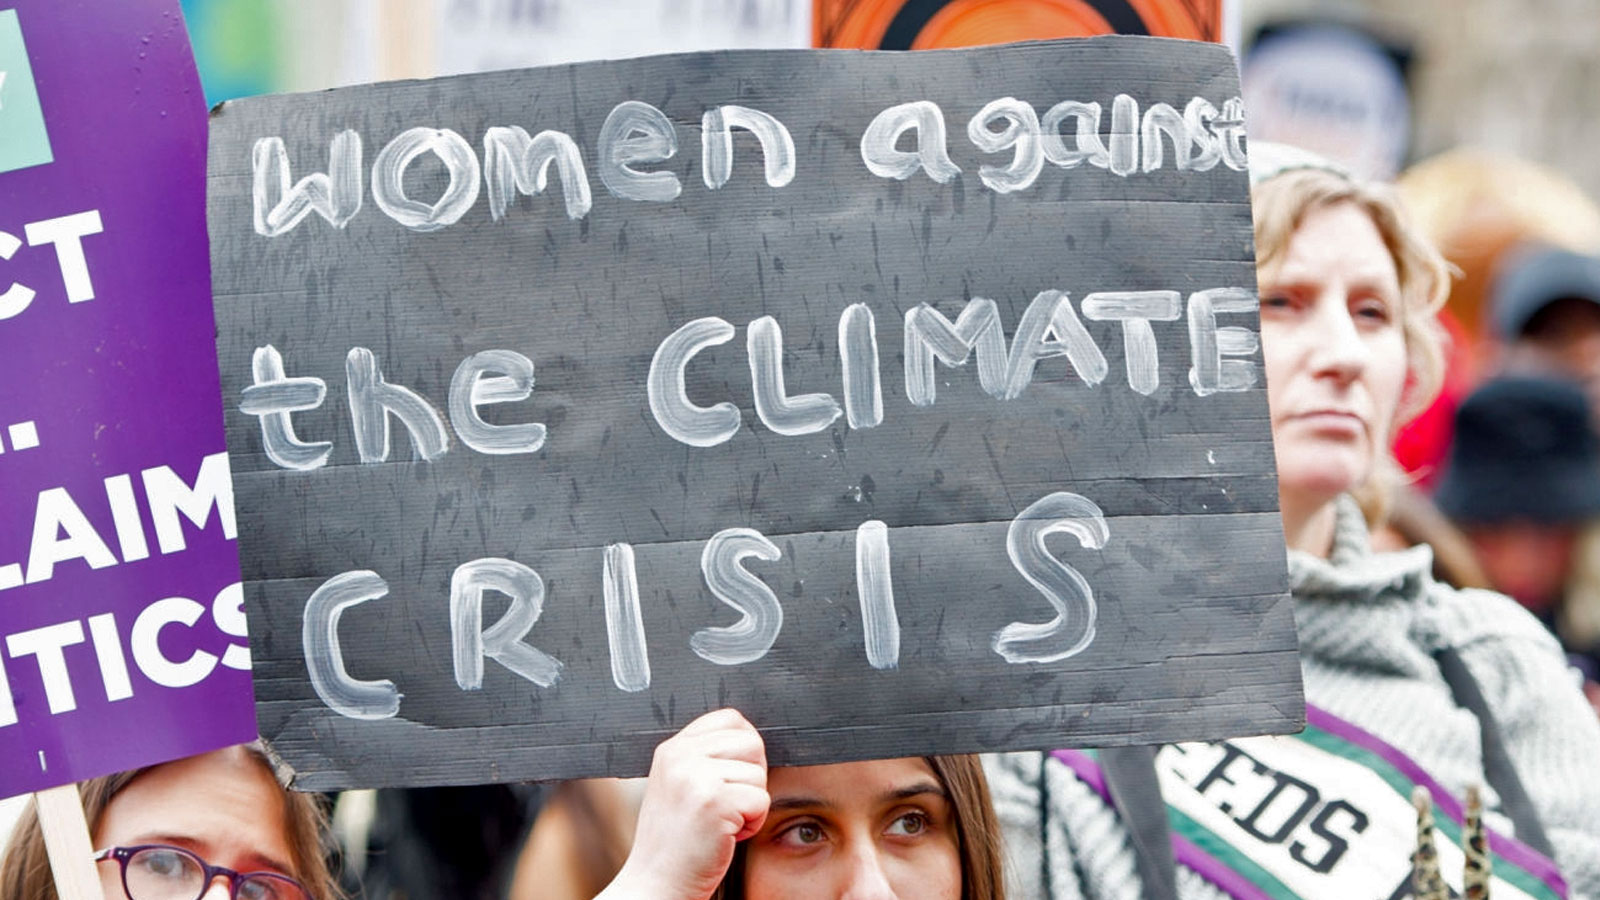 A woman holding a sign that says